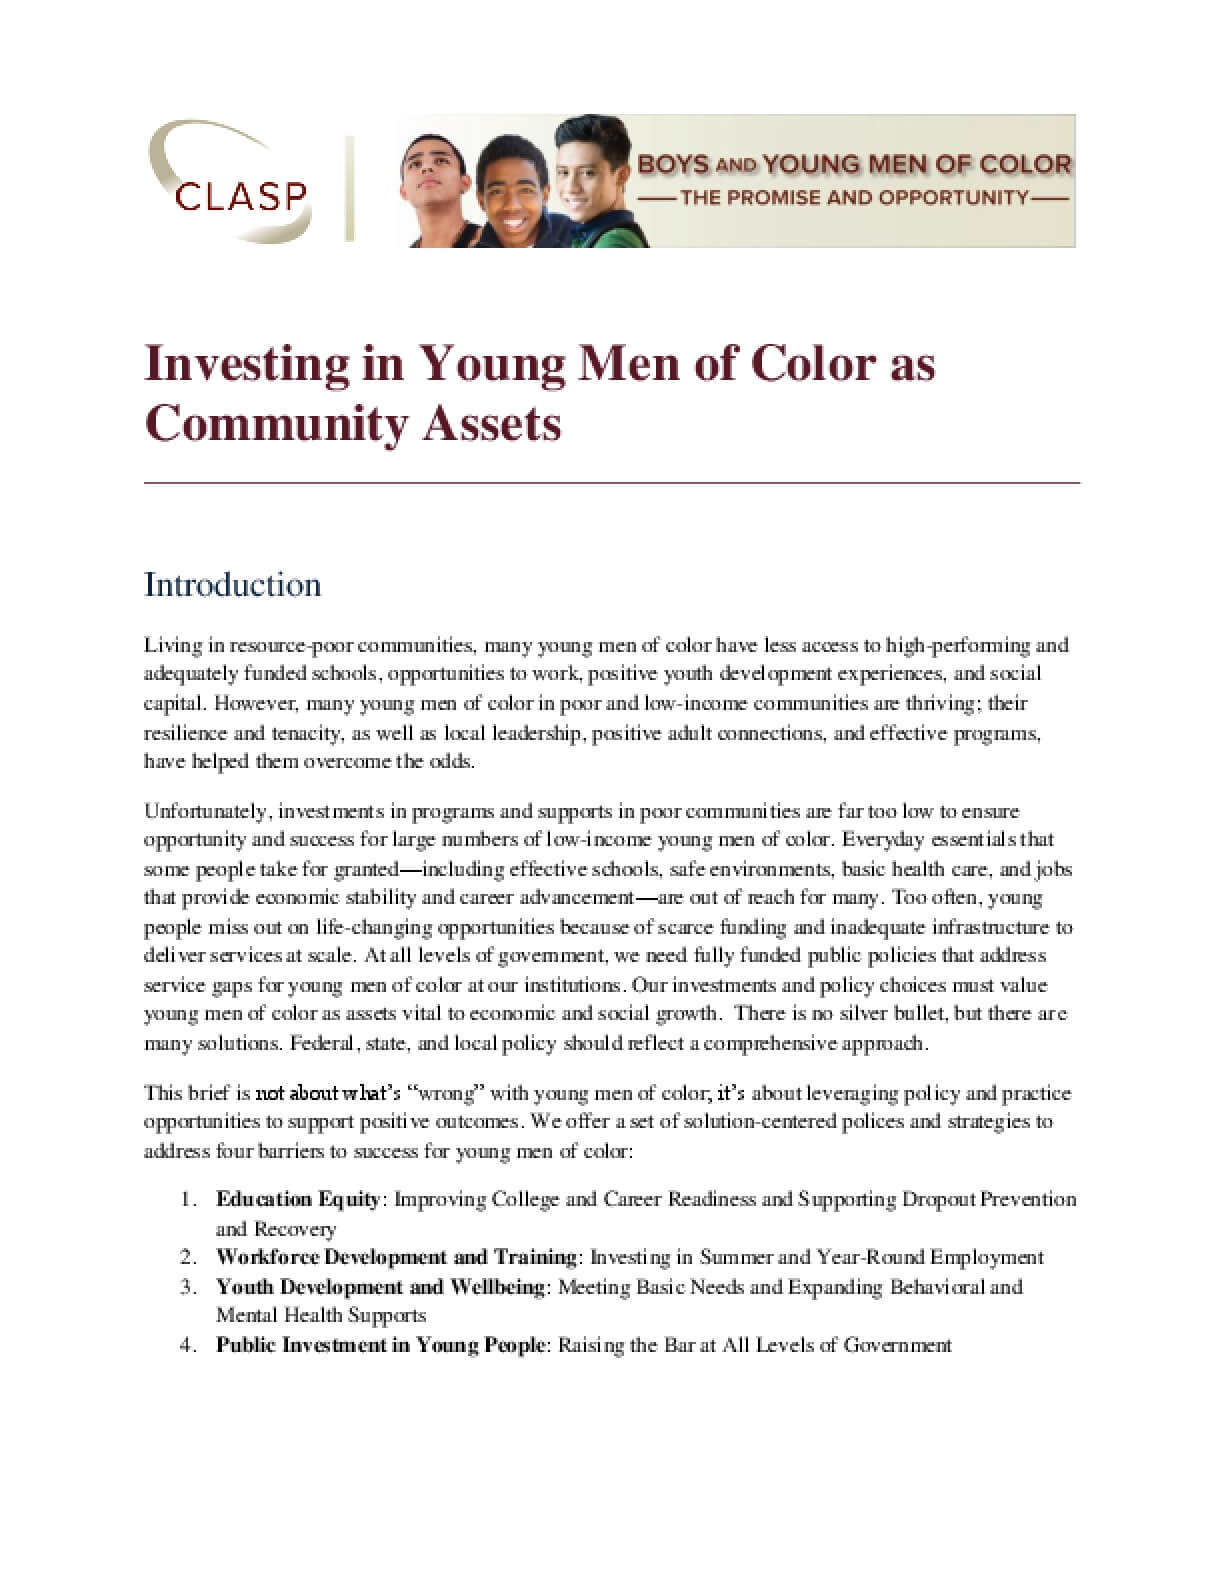 Investing in Young Men of Color as Community Assets